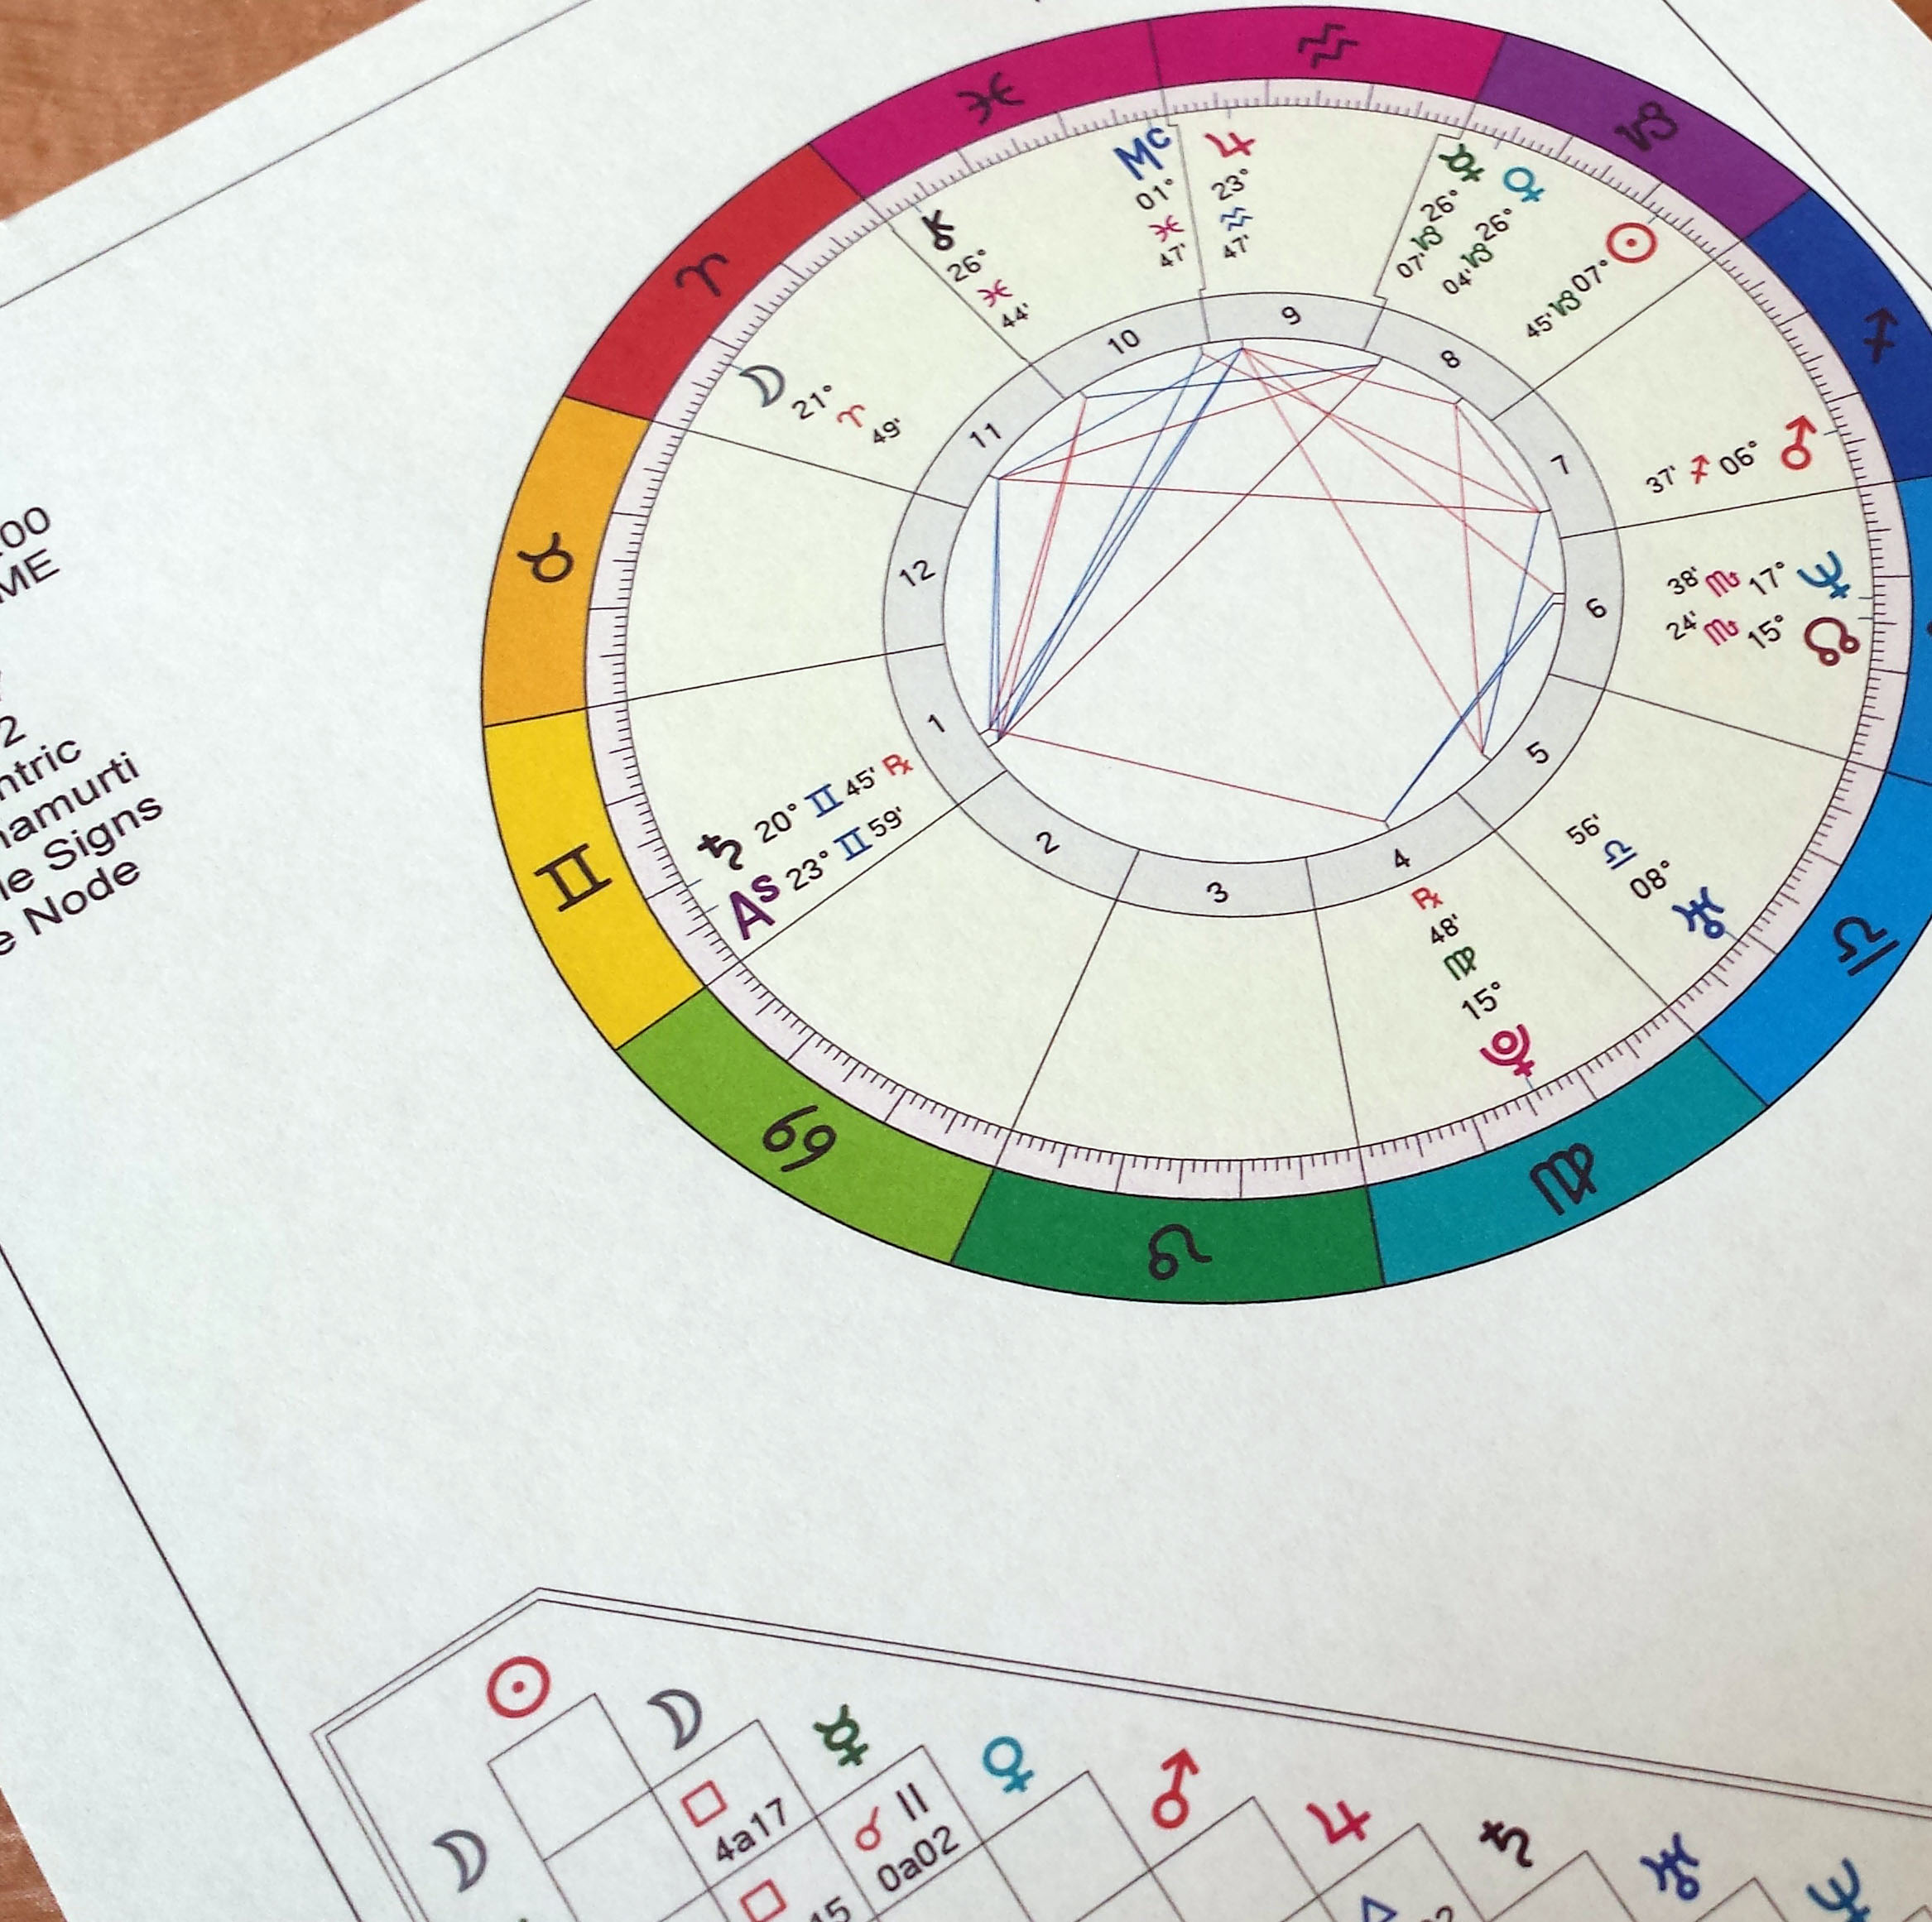 Basic Natal Chart | Digital Astrology Chart | Astrological Birth Chart ~  Full Color from Mystick Physick